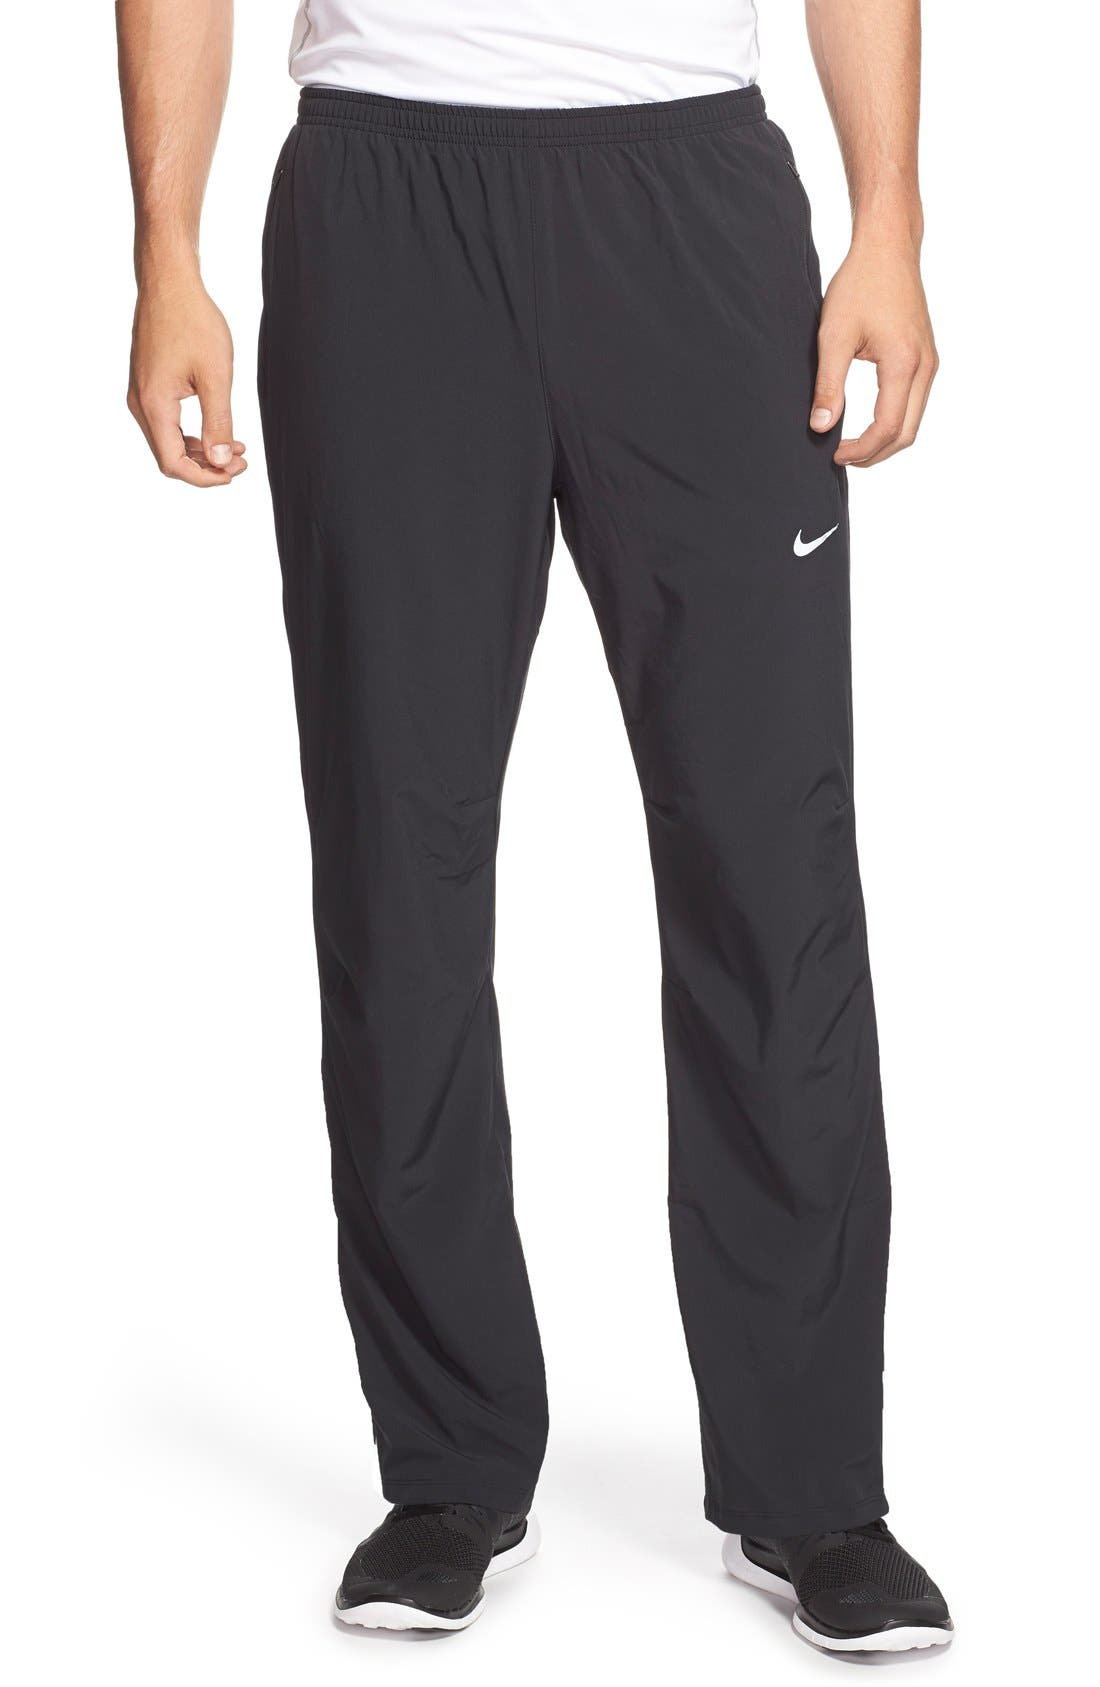 Main Image - Nike Dri-FIT Woven Pants